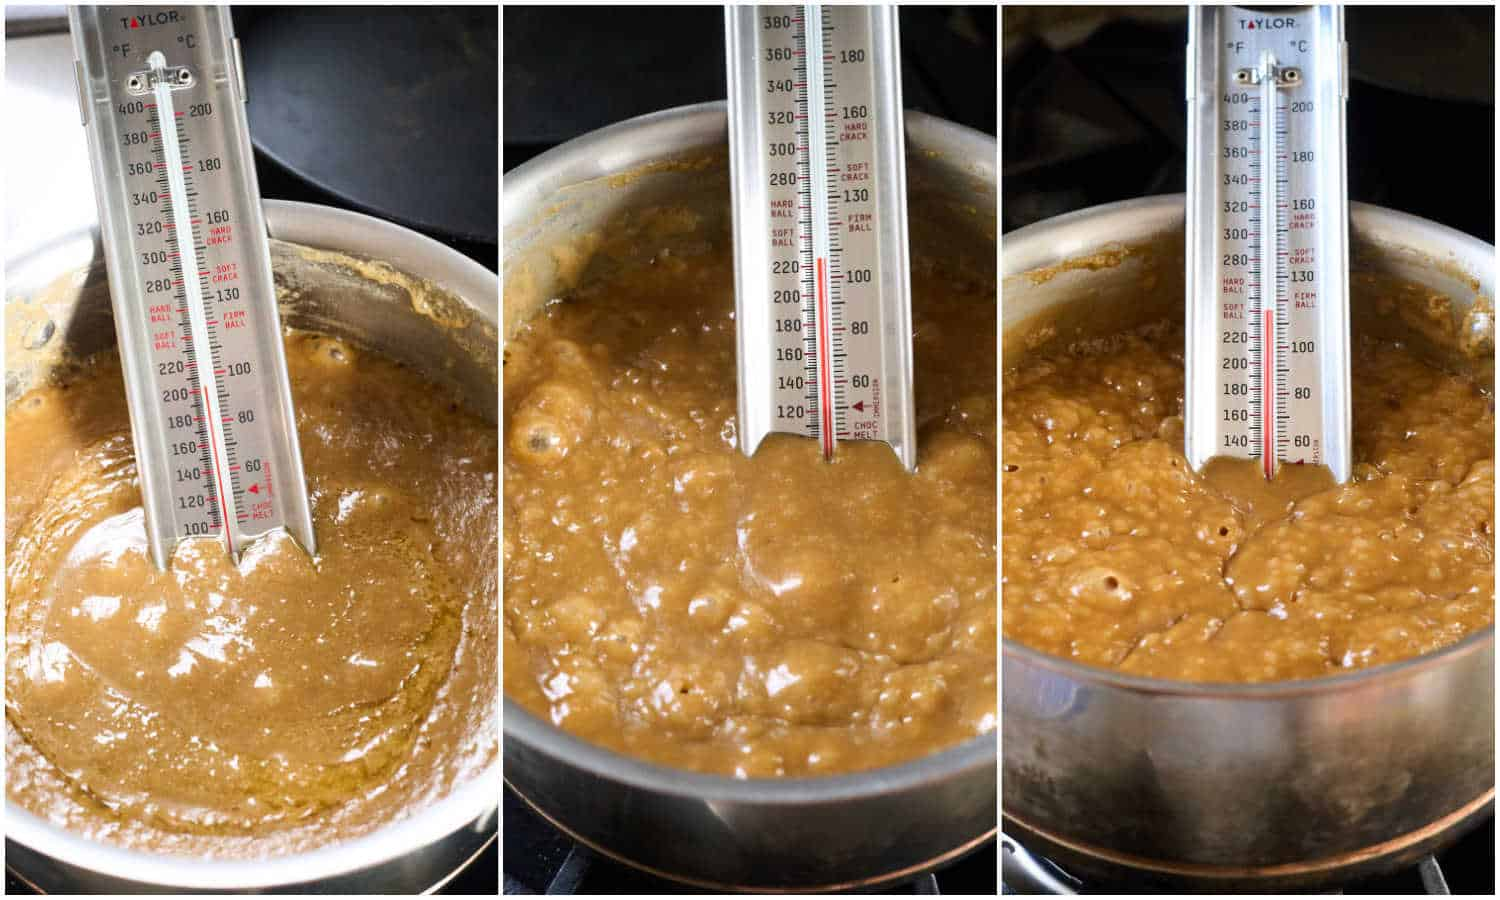 3 images showing how caramel looks in saucepan as it boils and comes to soft ball stage